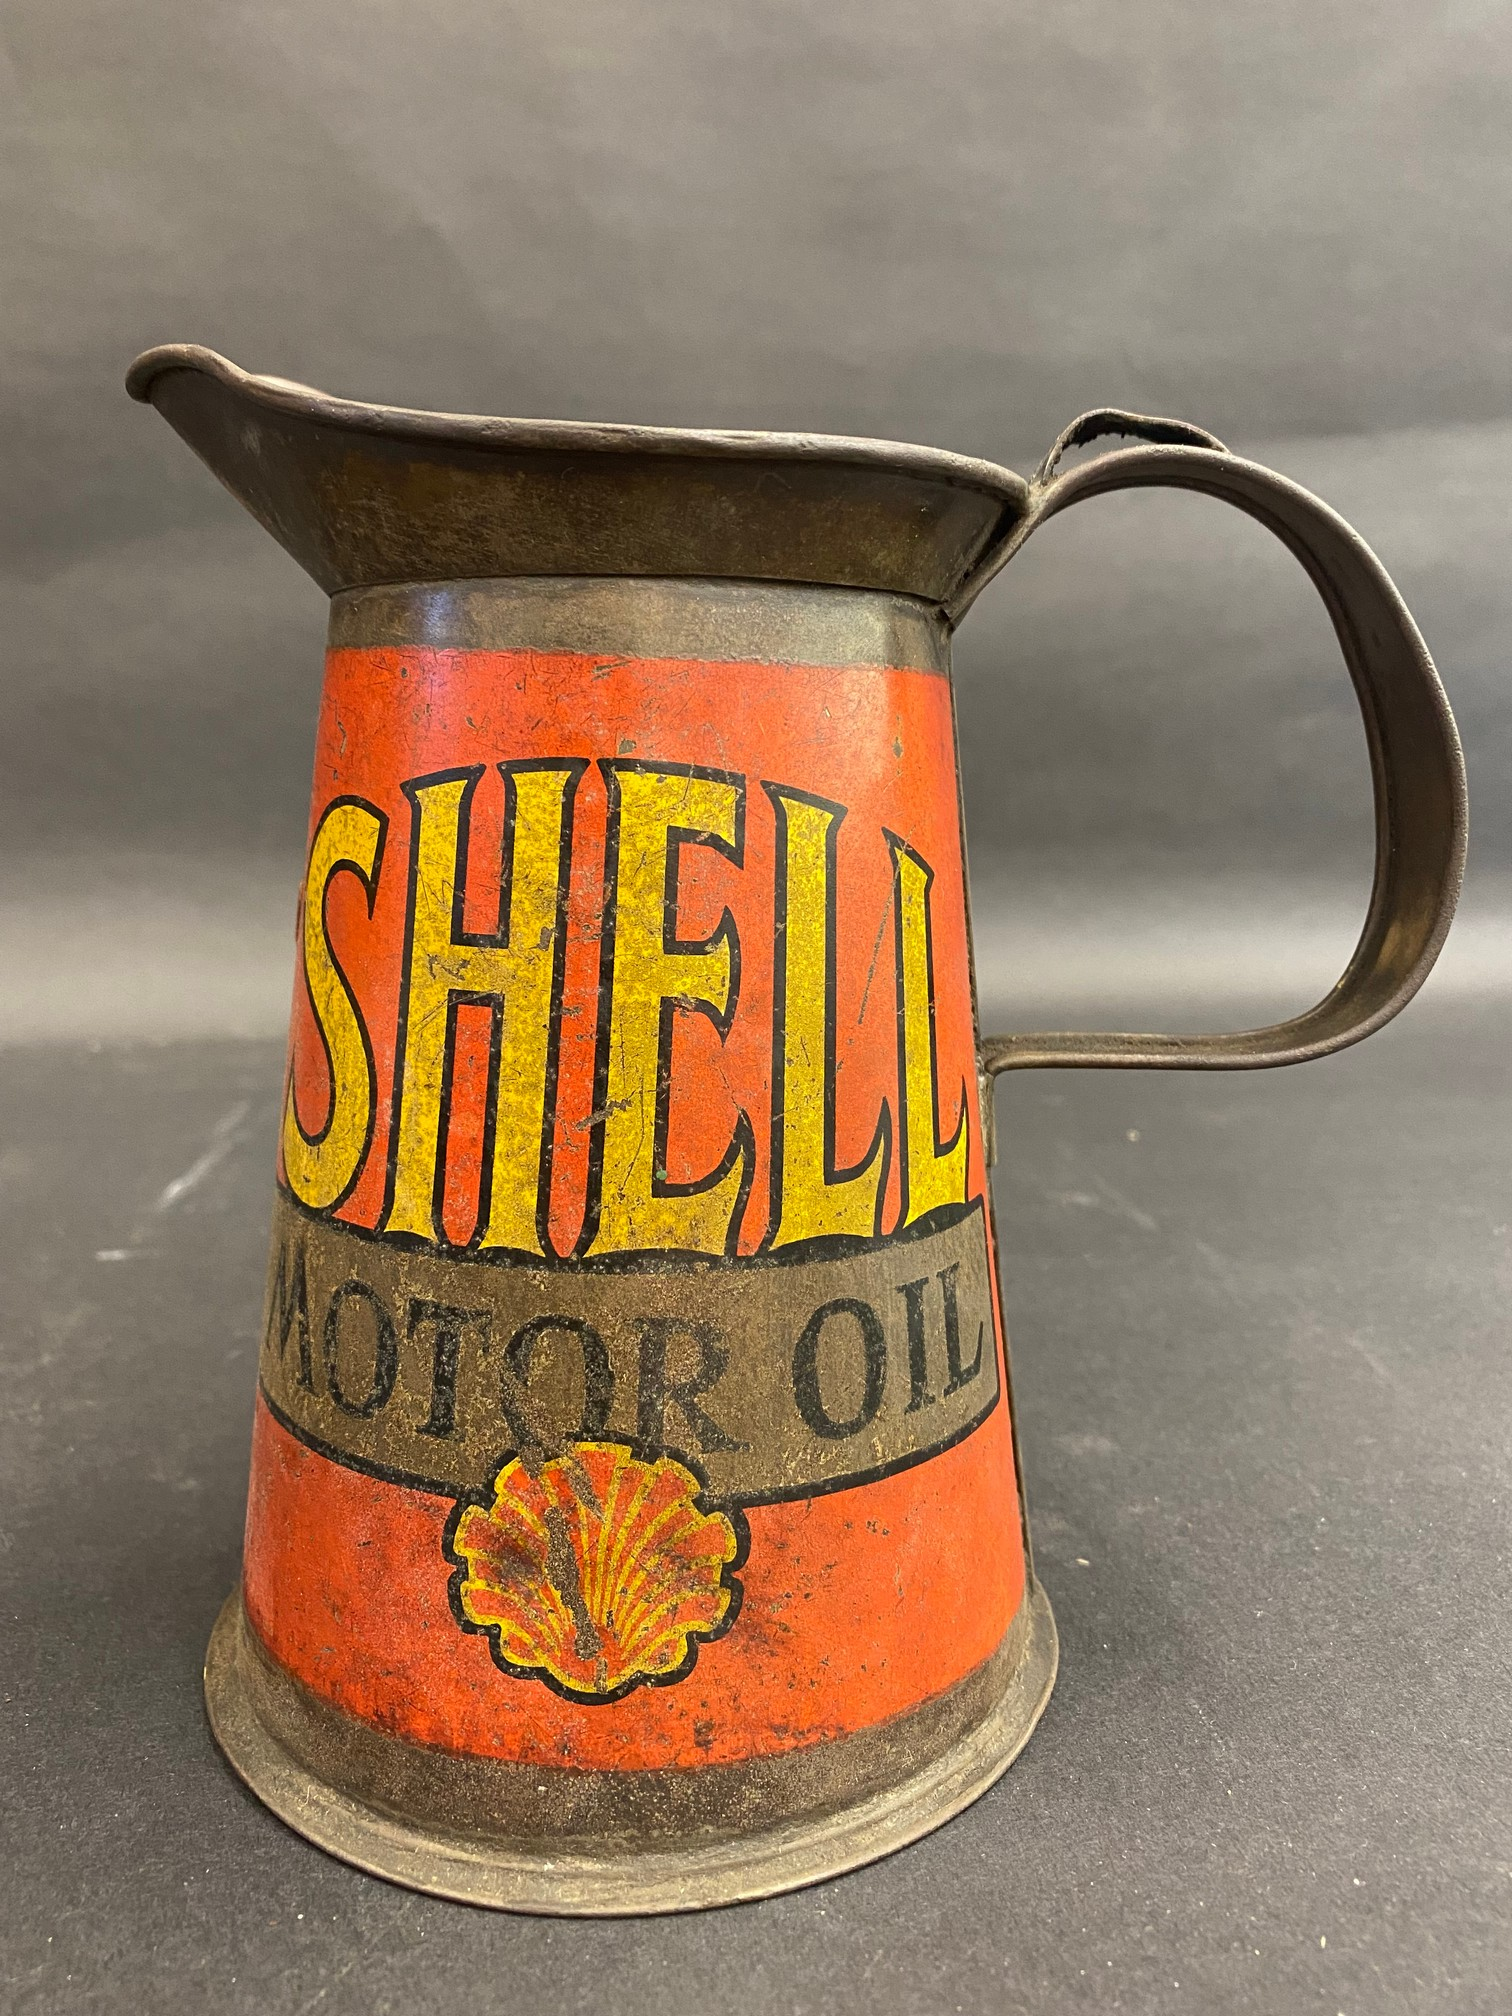 A Shell Motor Oil quart measure, early wide neck version, dated 1929.